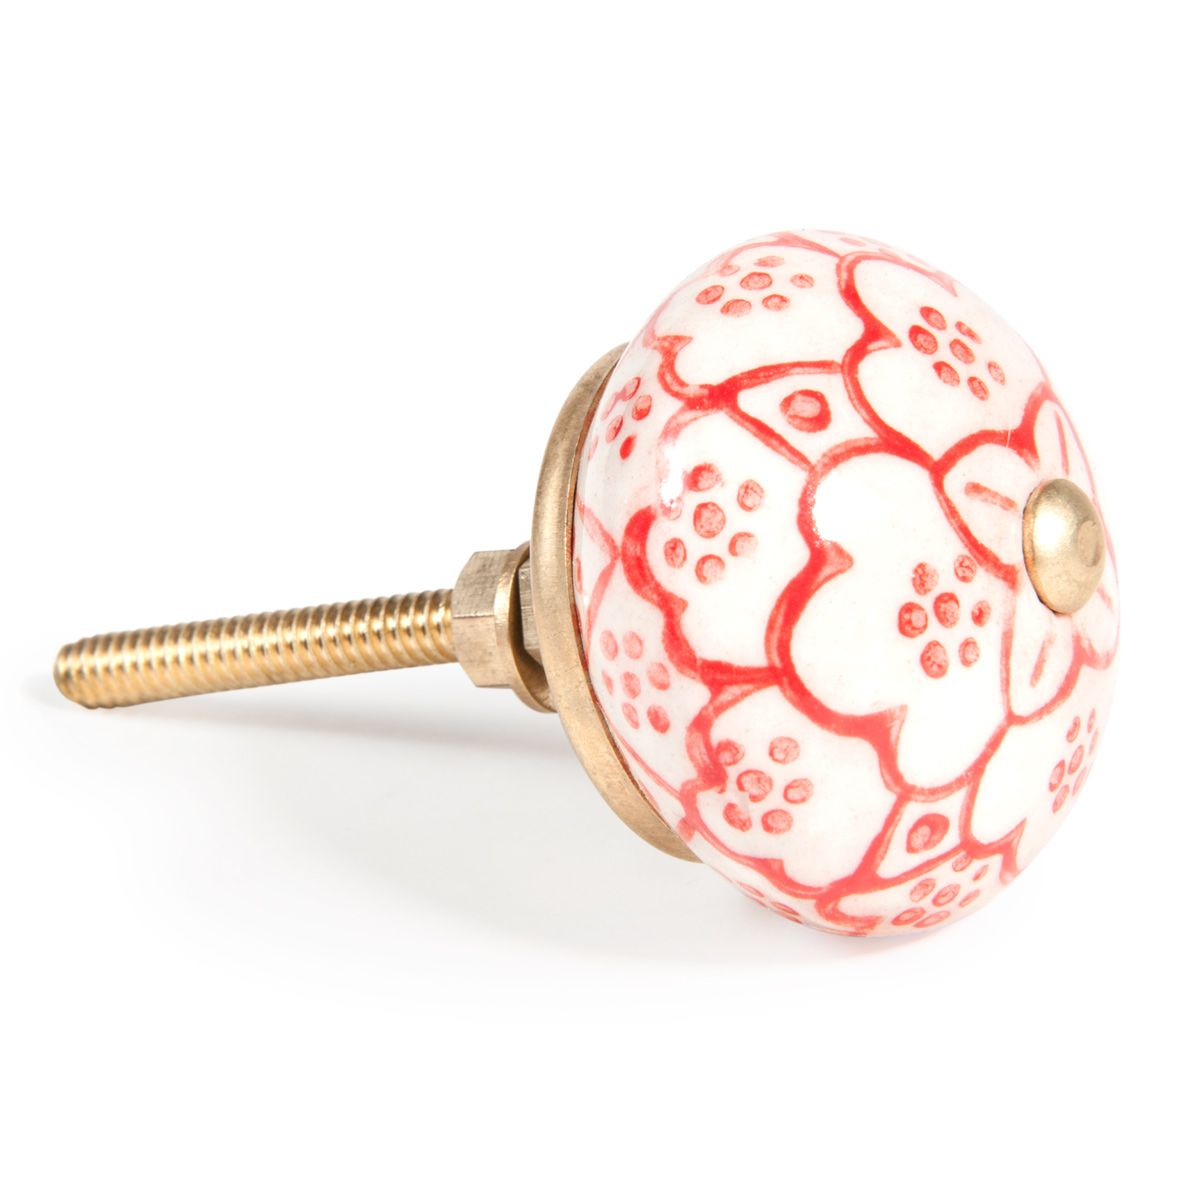 Bastida door knob in red maisons du monde knobalicious pinterest door knobs armoire et - Bouton de porte maison du monde ...